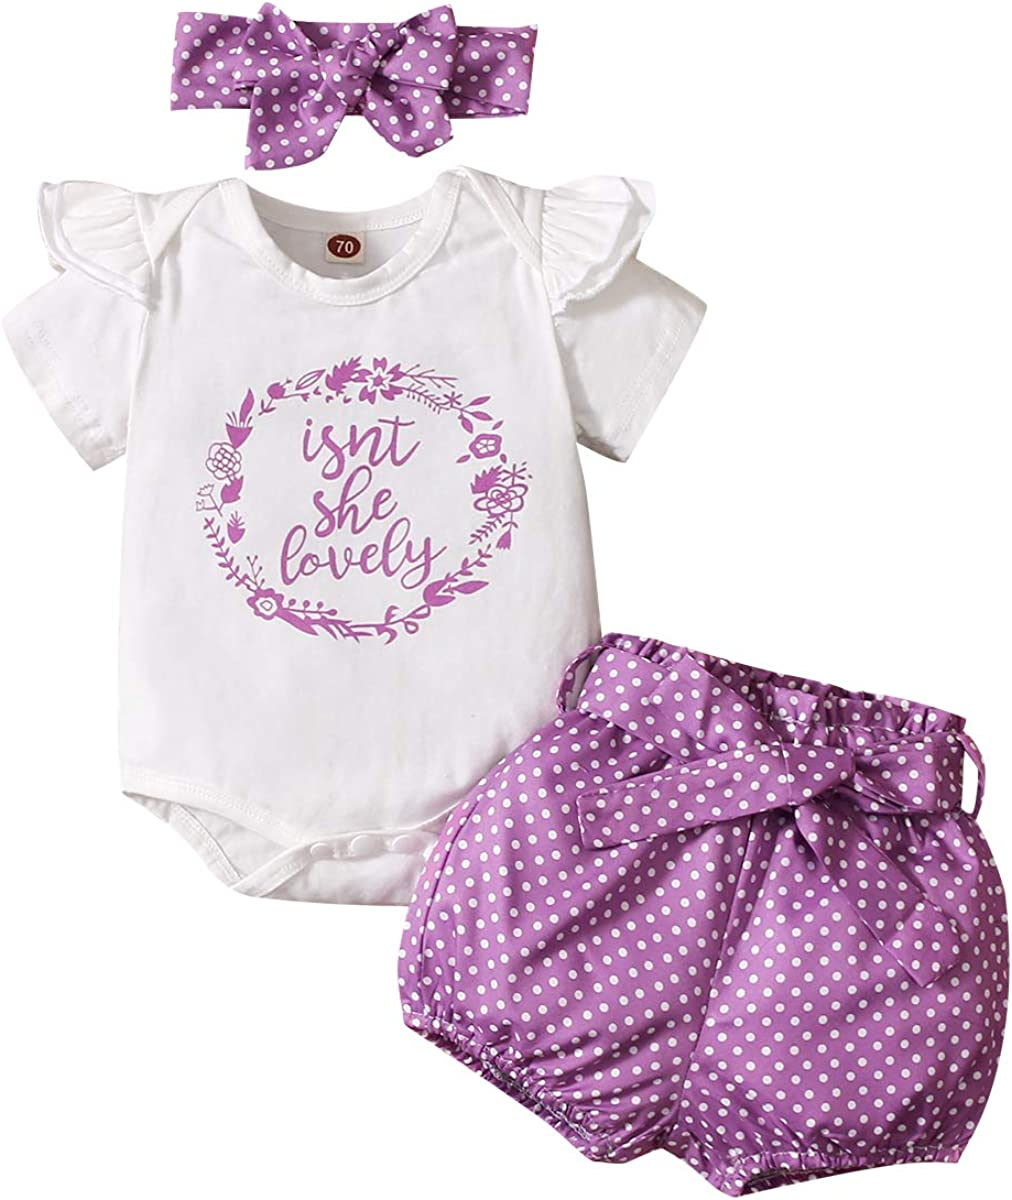 Isn't She Lovely Newborn Baby Girls Coming Home Outfit Ruffle Romper Shorts Pants Headband 3PCS Summer Clothes Set